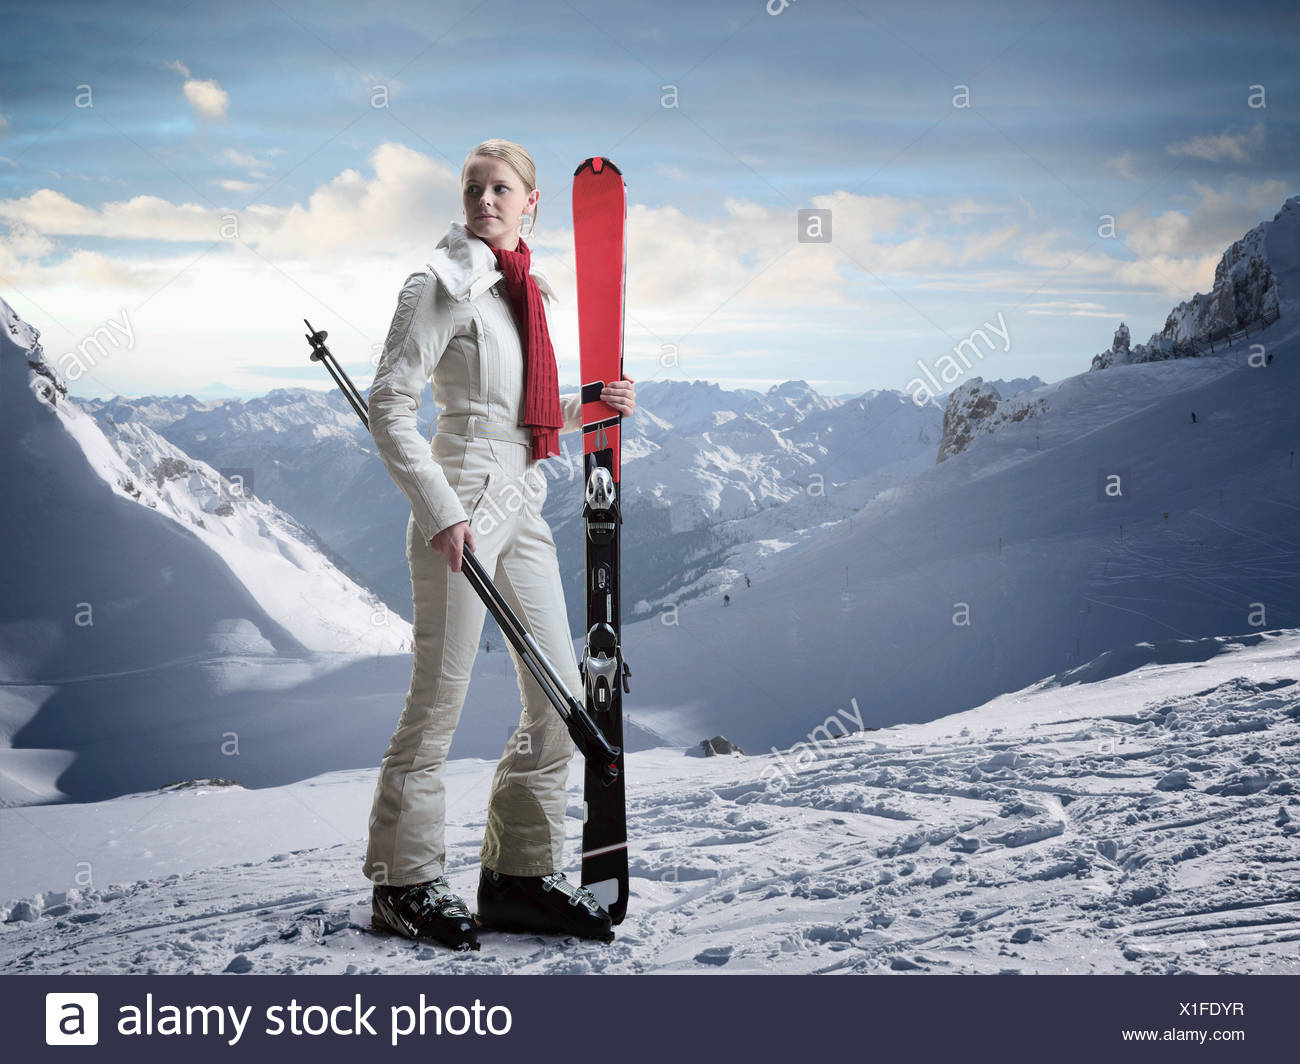 Woman carrying skis on snowy slope - Stock Image